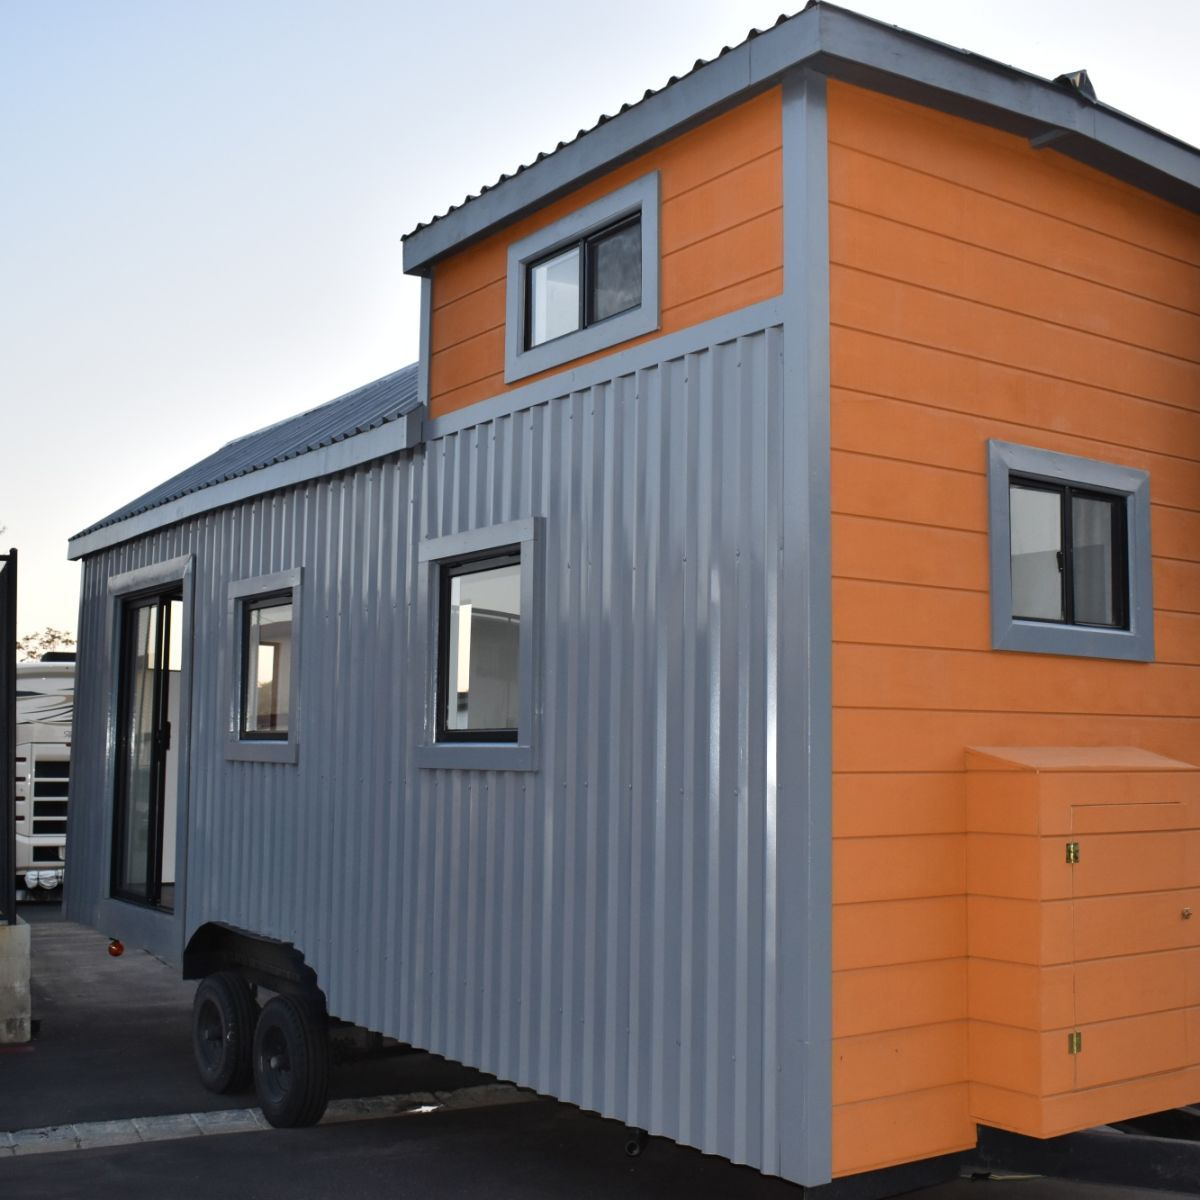 Pleasing 30 X 8 And 290Sq Ft Tiny Home Tiny House For Sale In Download Free Architecture Designs Xaembritishbridgeorg